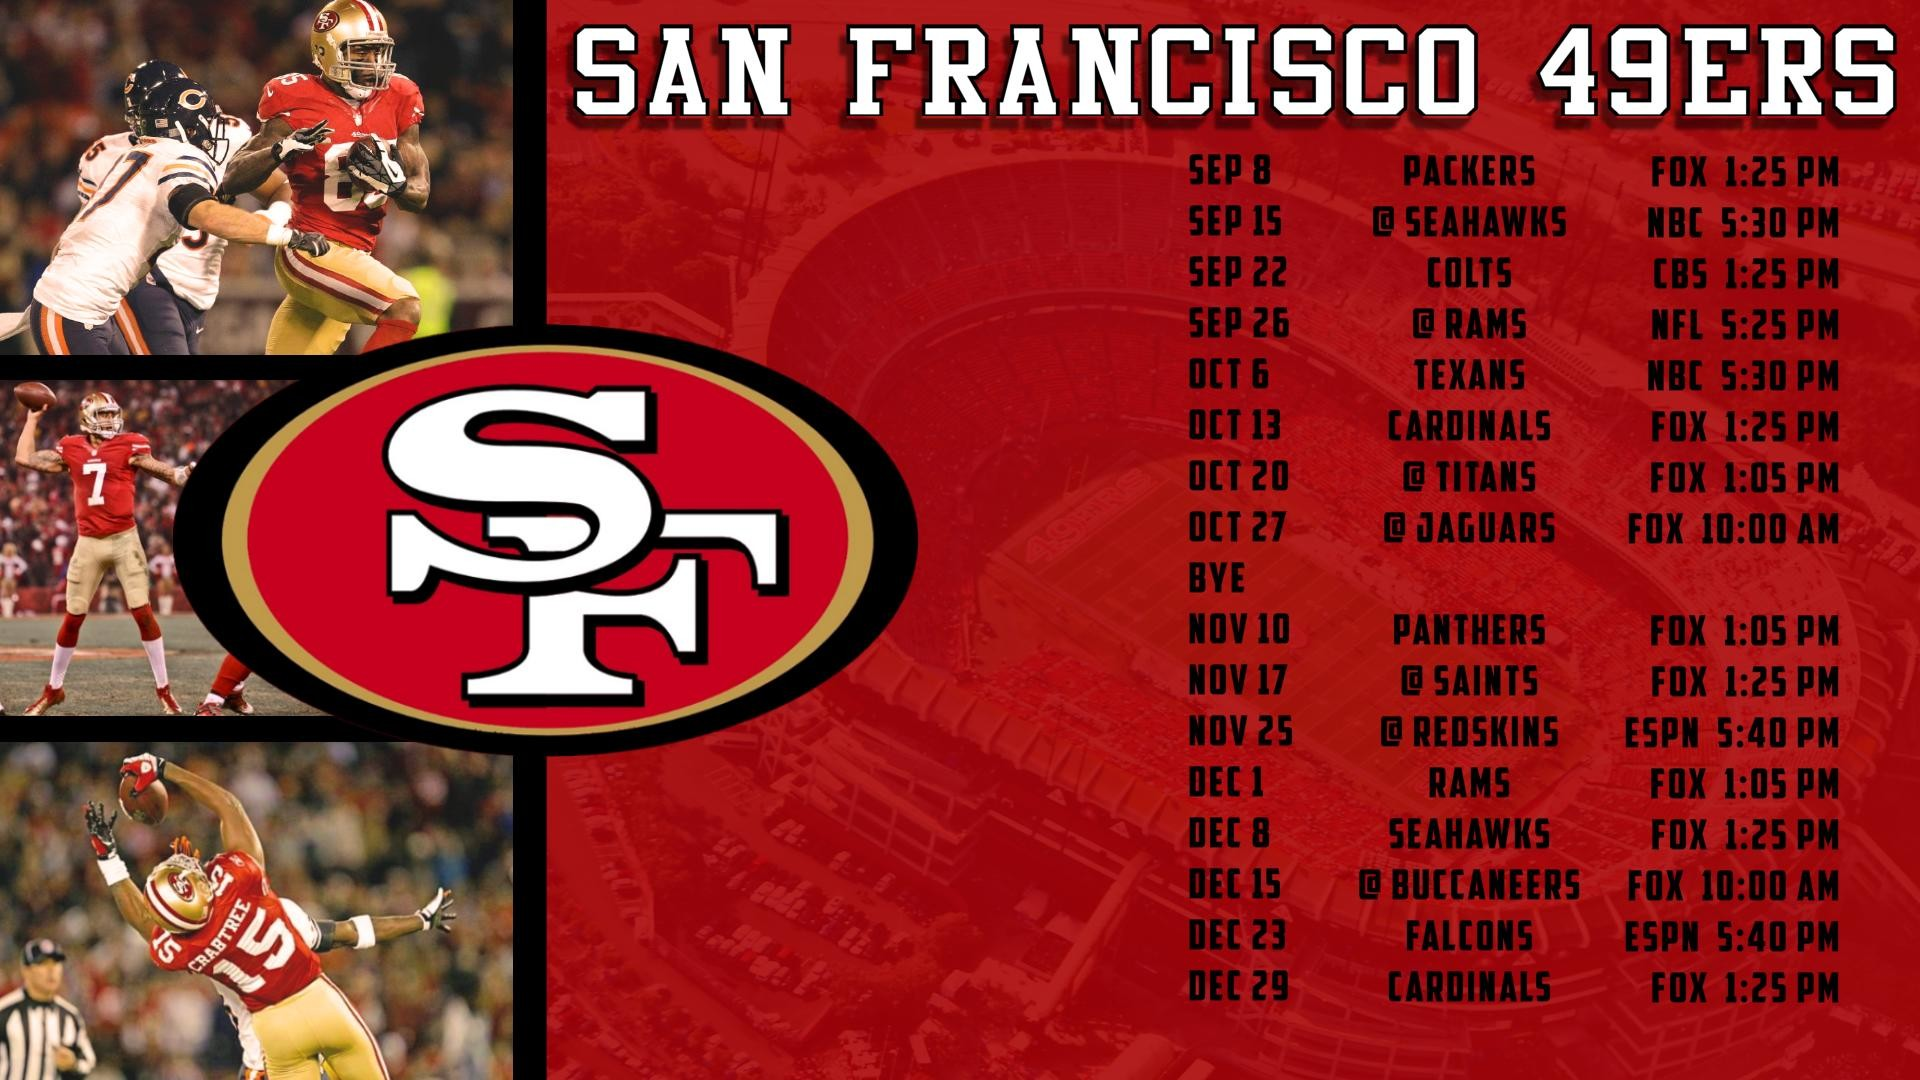 49ers-Schedule-Wallpaper-Willis-1-EST-by-SanFran49er